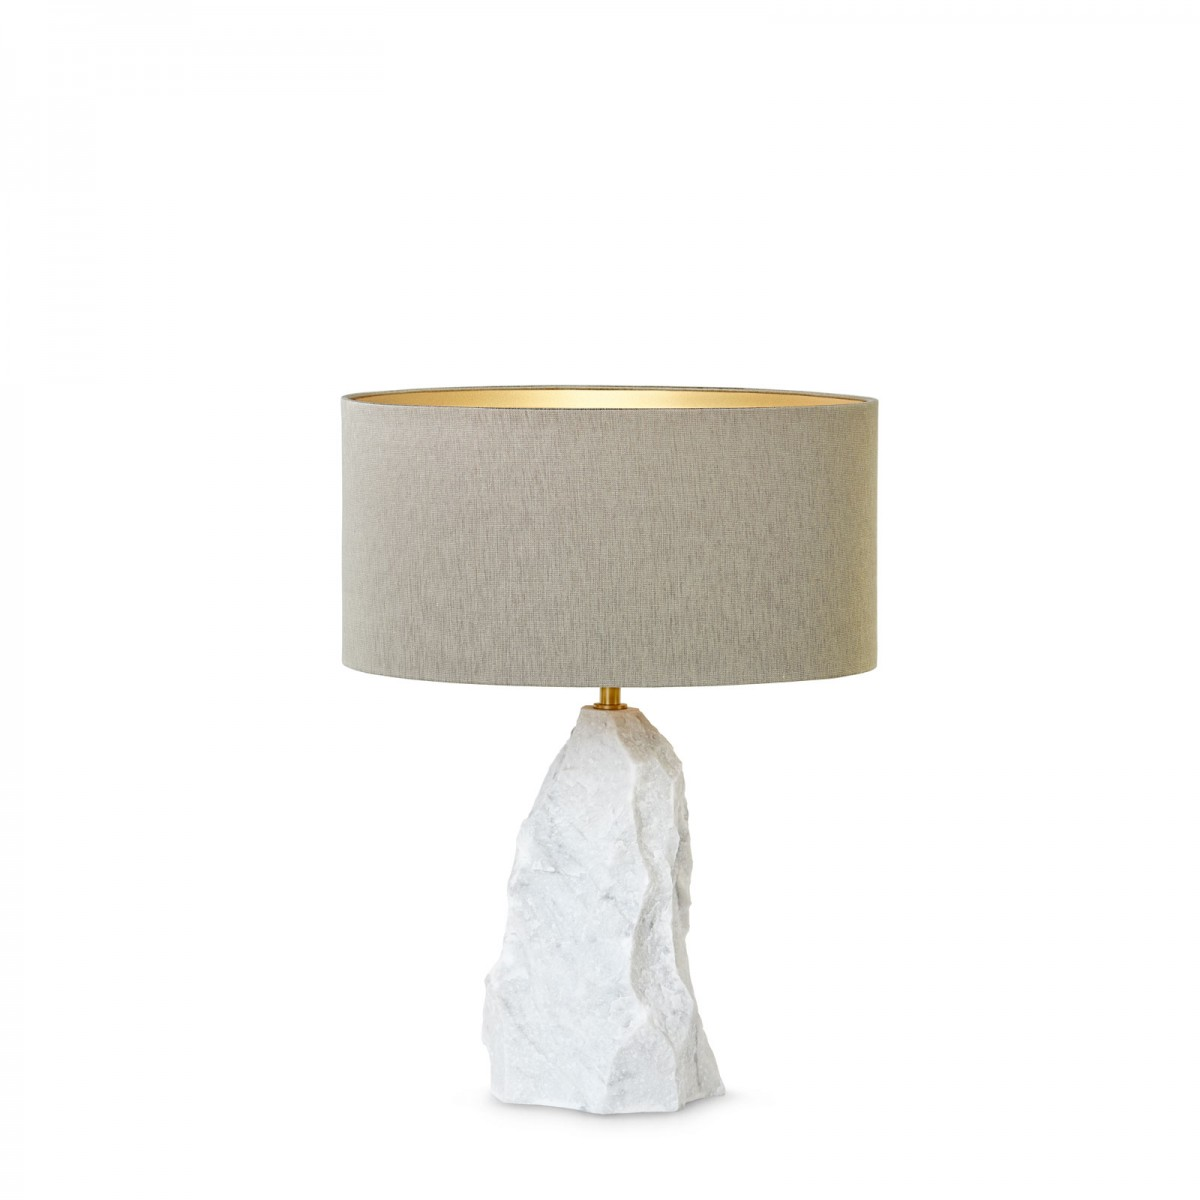 Ginger & Jagger's new Pico | Table Lamp, handcarved in marble.